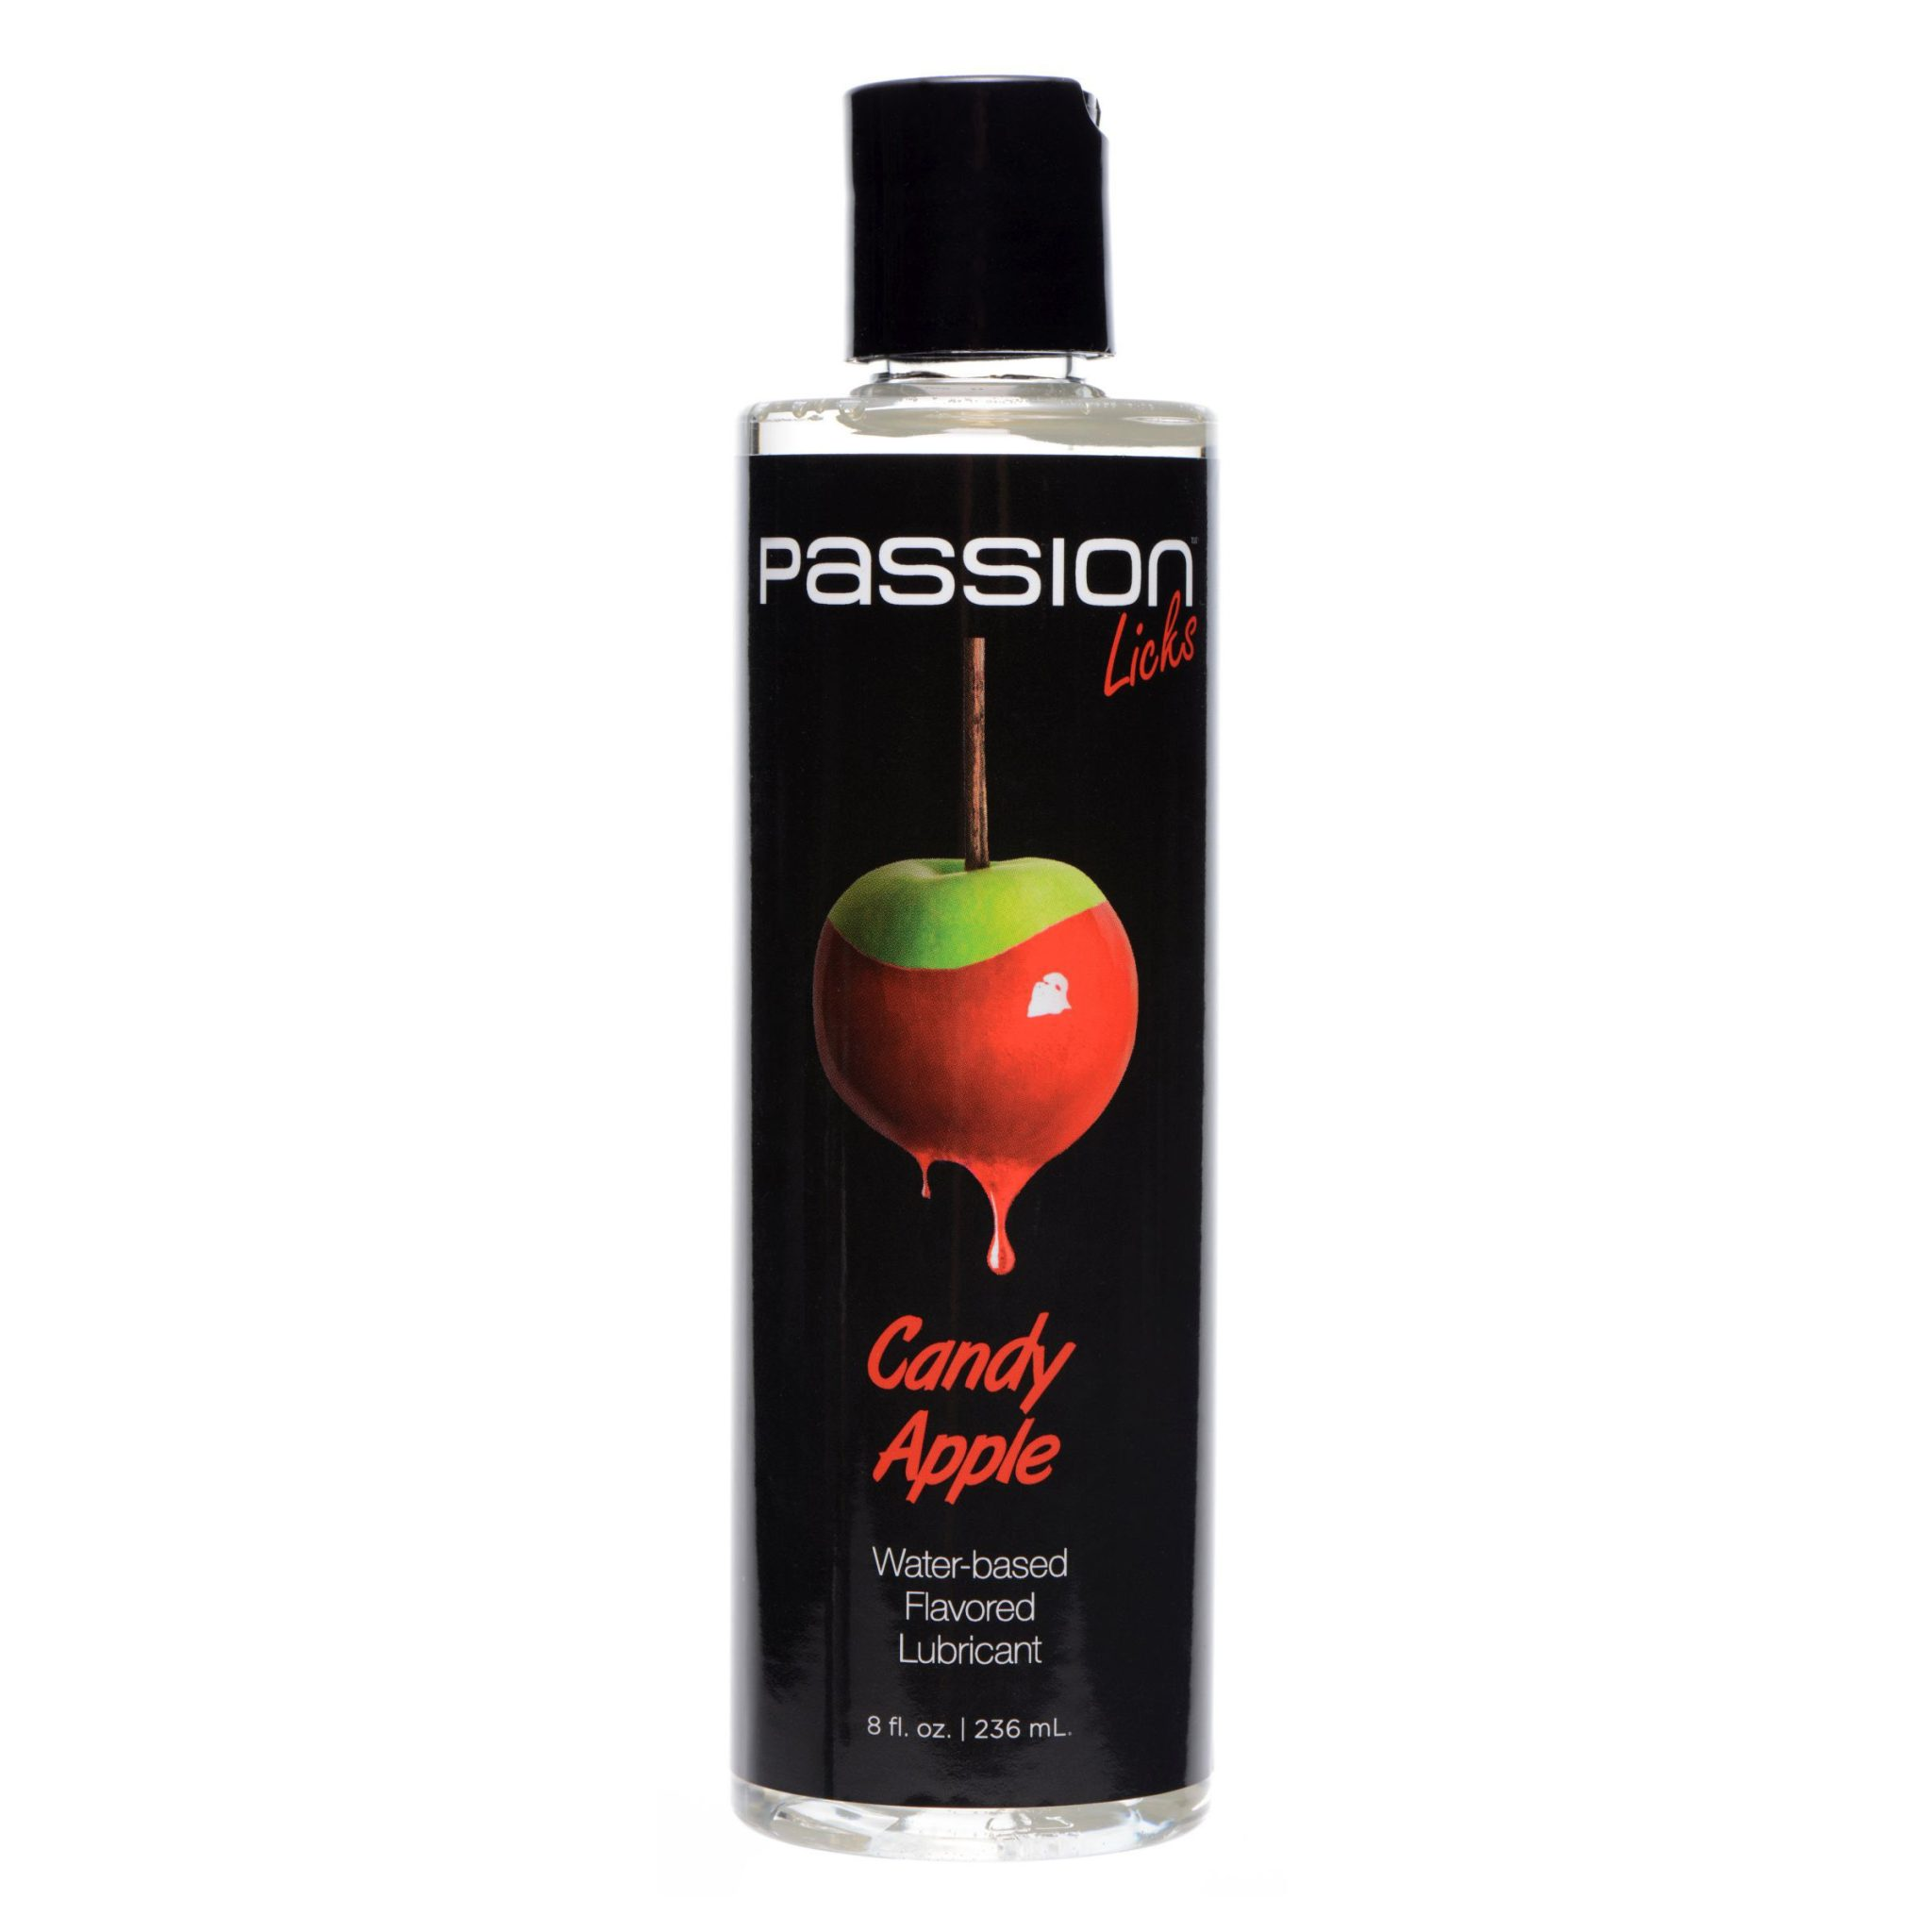 Passion Licks Candy Apple Water Based Flavored Lubricant – 8 oz